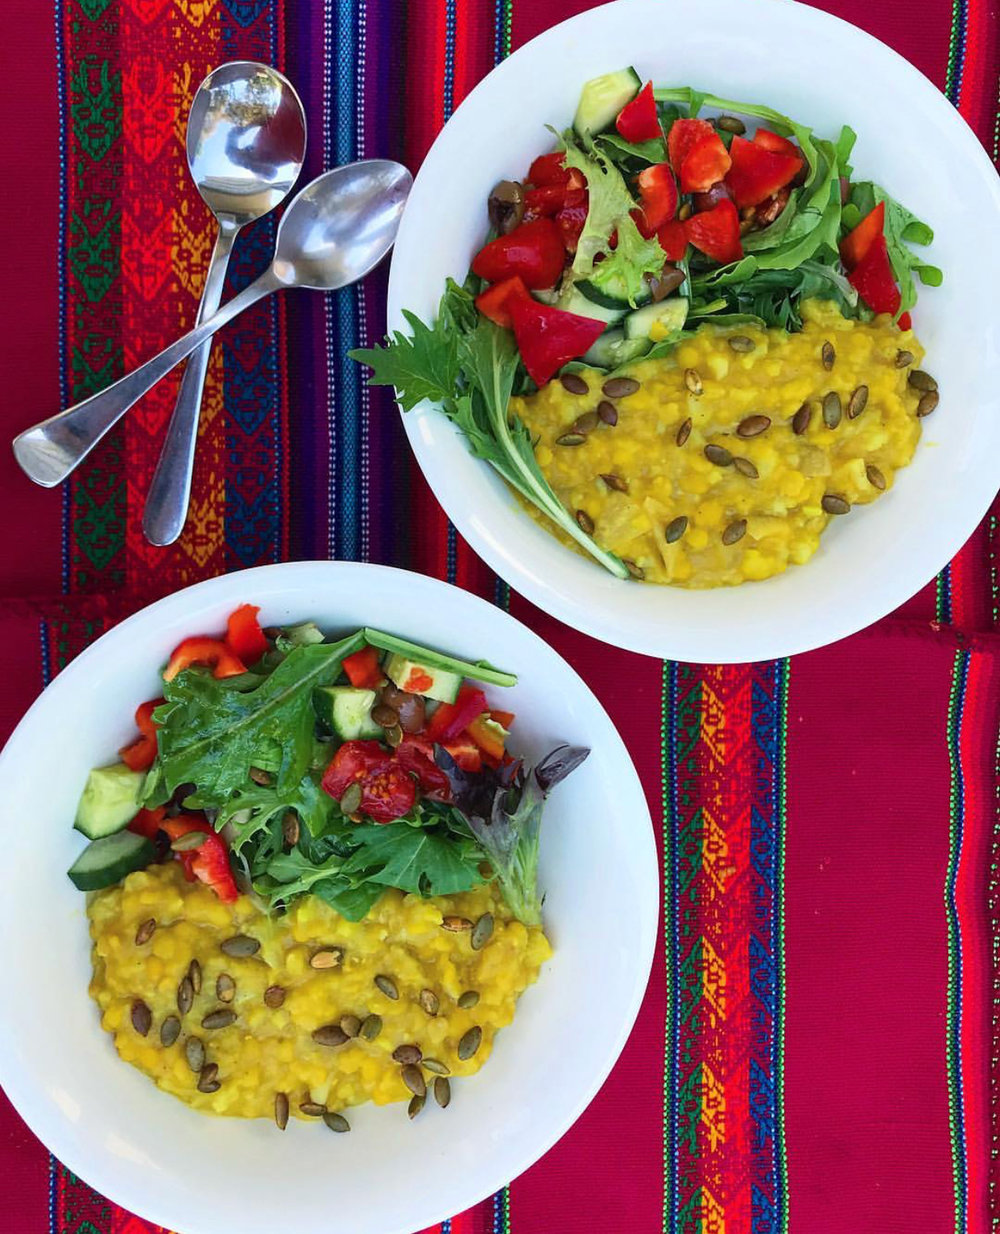 If you want it as a lighter meal, you can serve the dal without rice and with a salad instead.